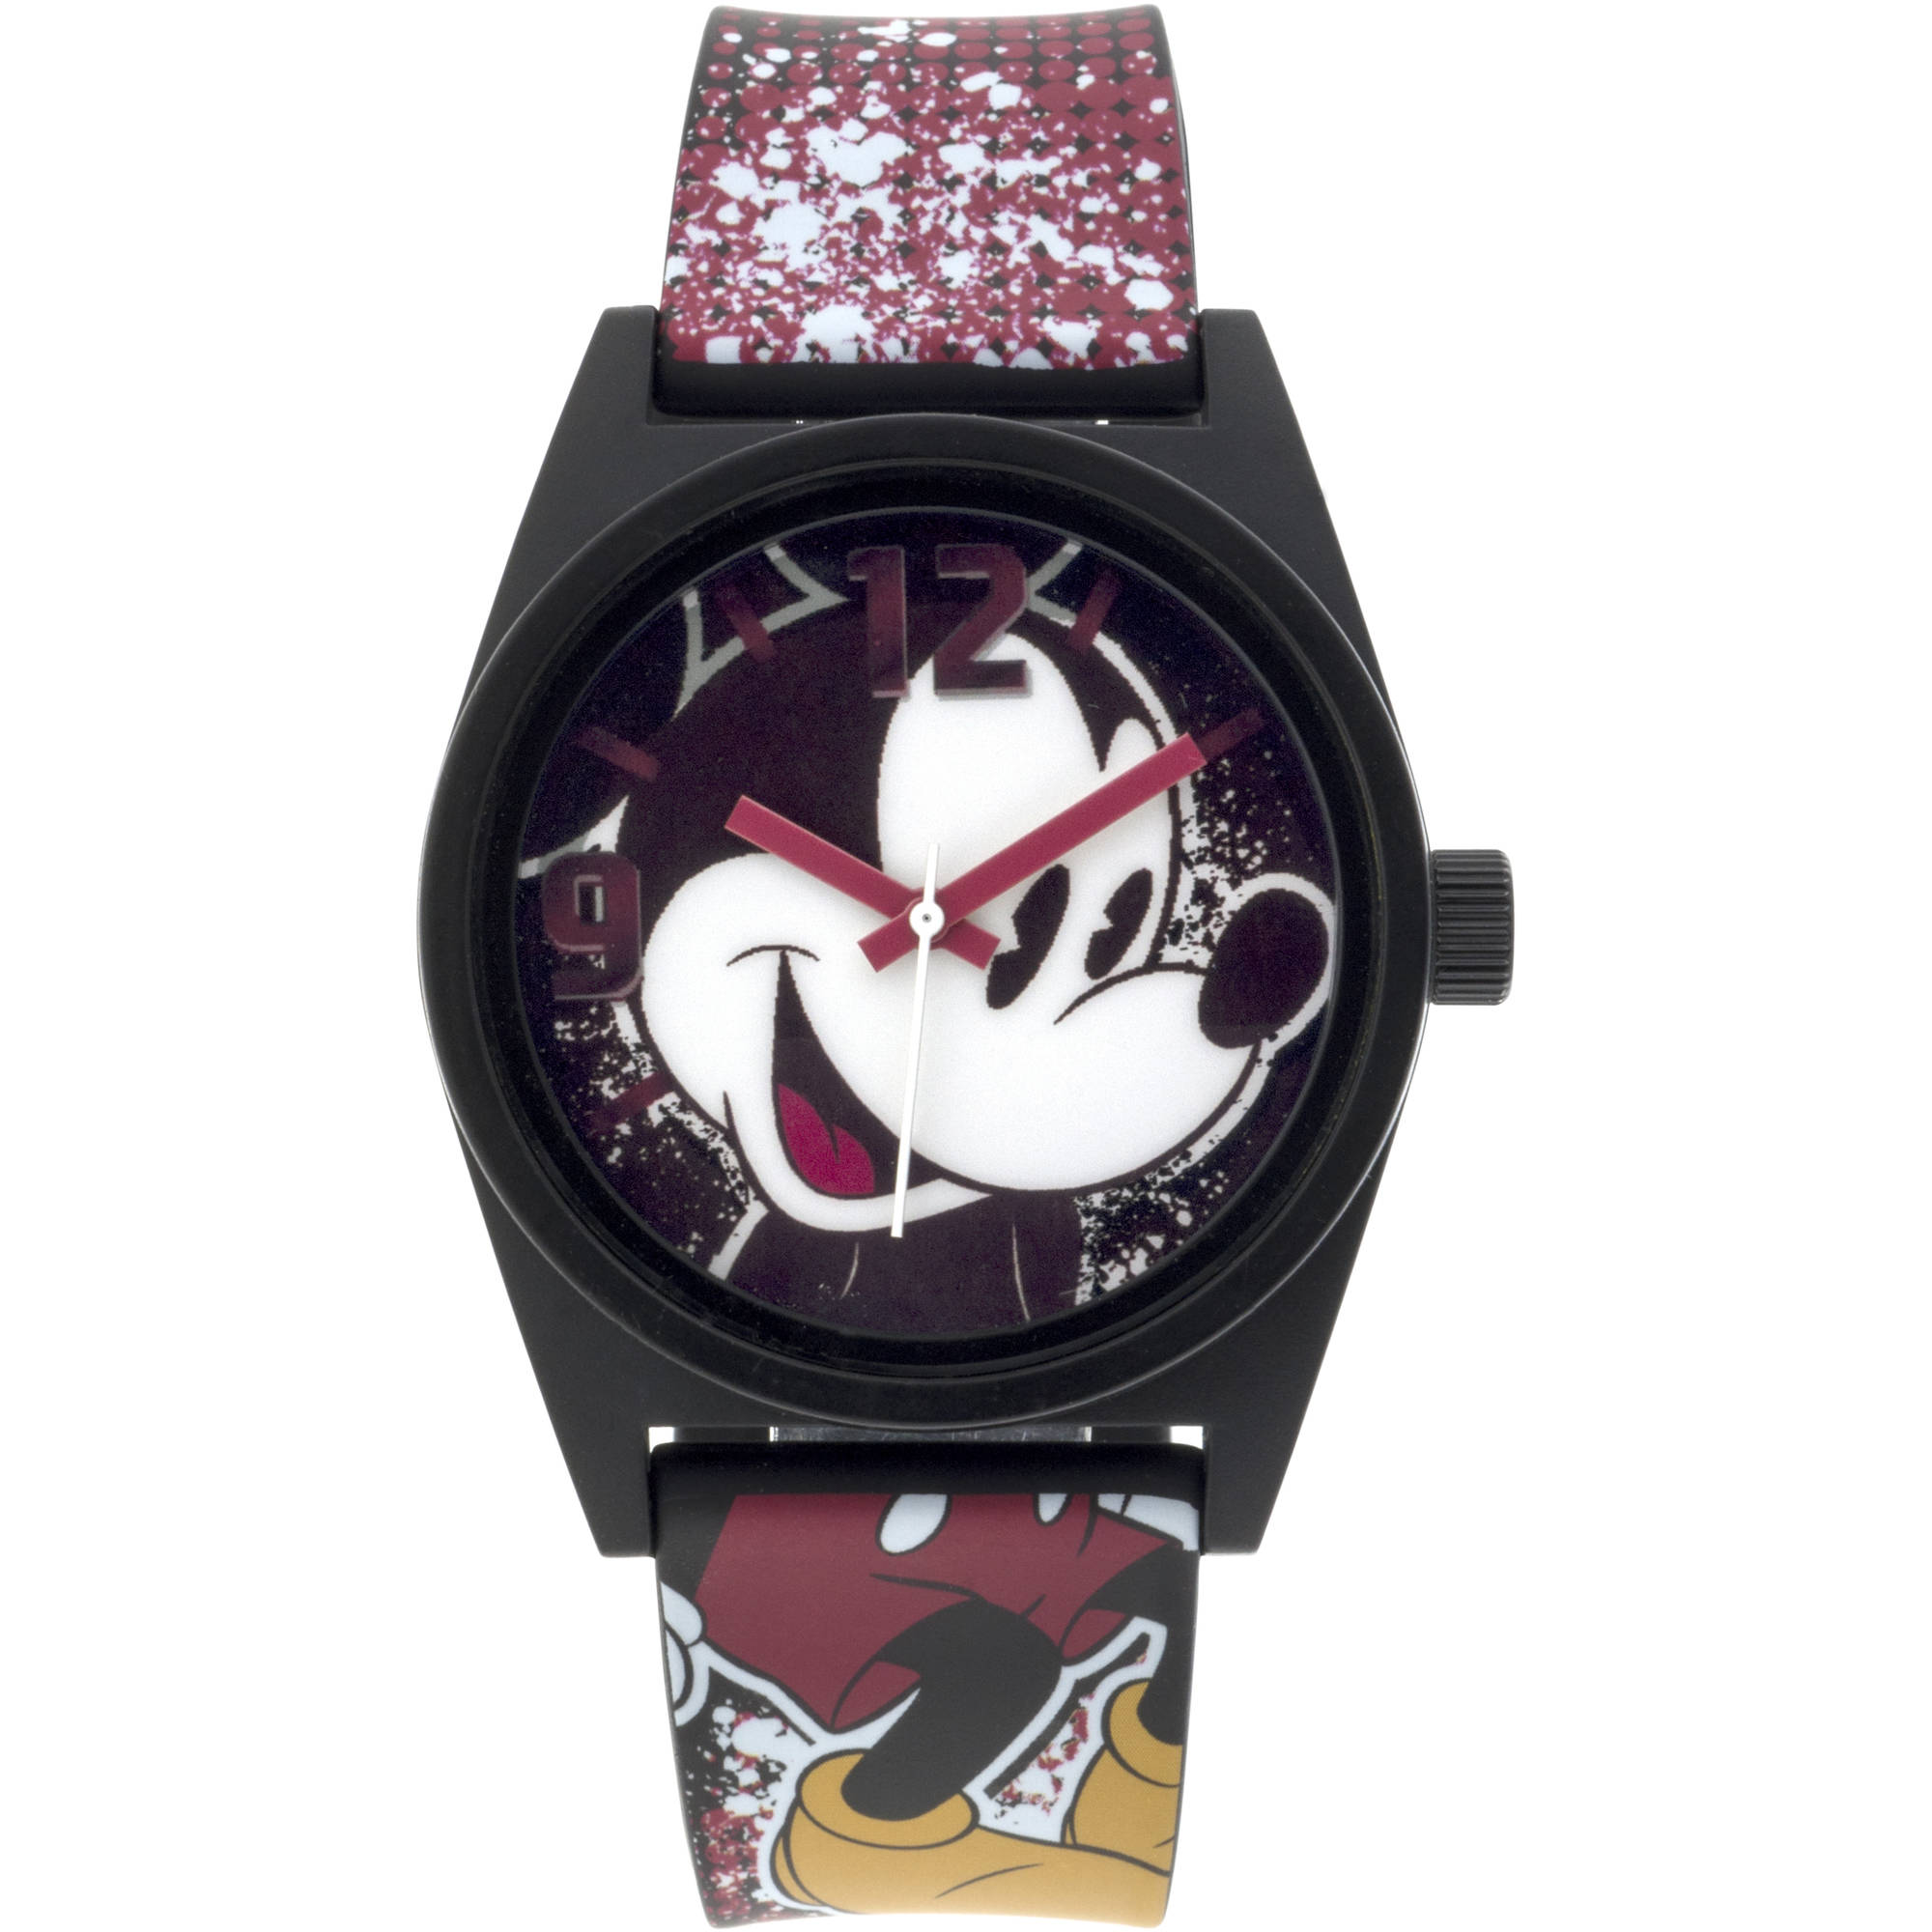 Mickey Mouse Black Case Character-Printed Dial Analog Watch, Printed Art Strap